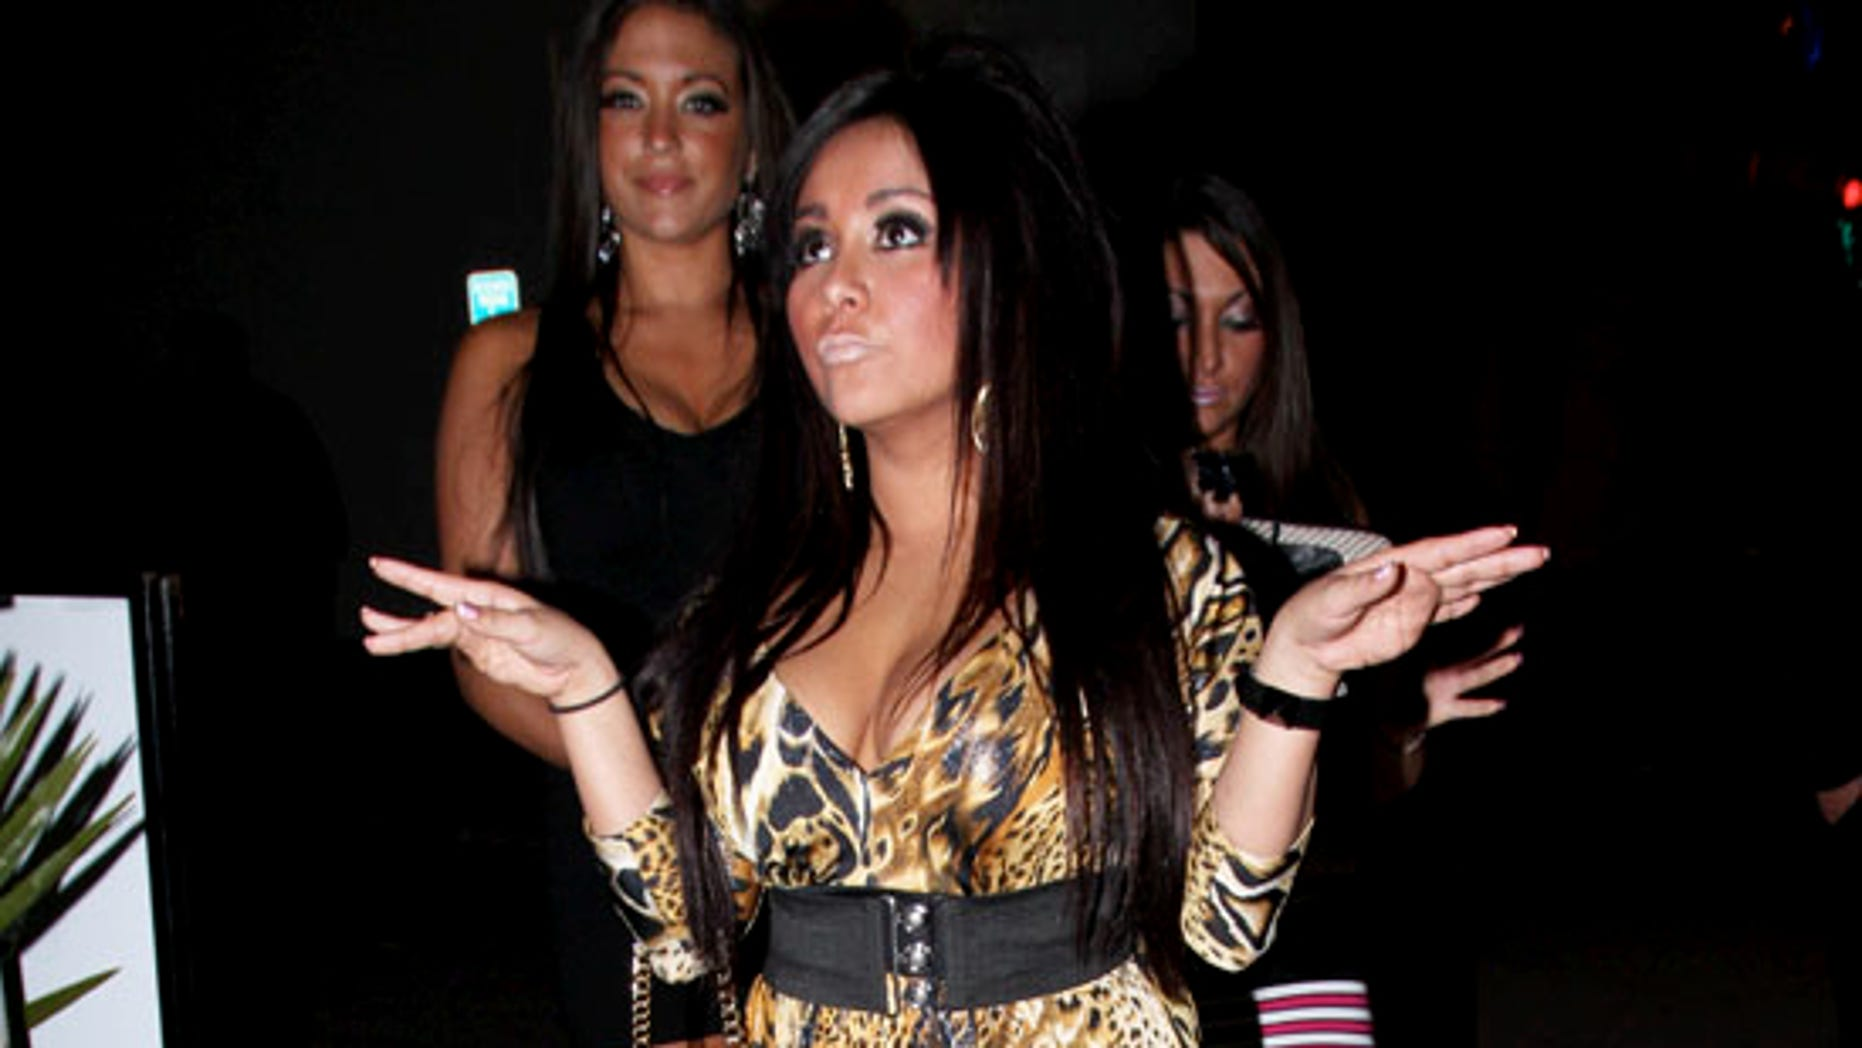 Nicole 'Snooki' Polizzi sizzles in her animal print at Voyeur in West Hollywood, CA on March 4, 2011. X17online.com